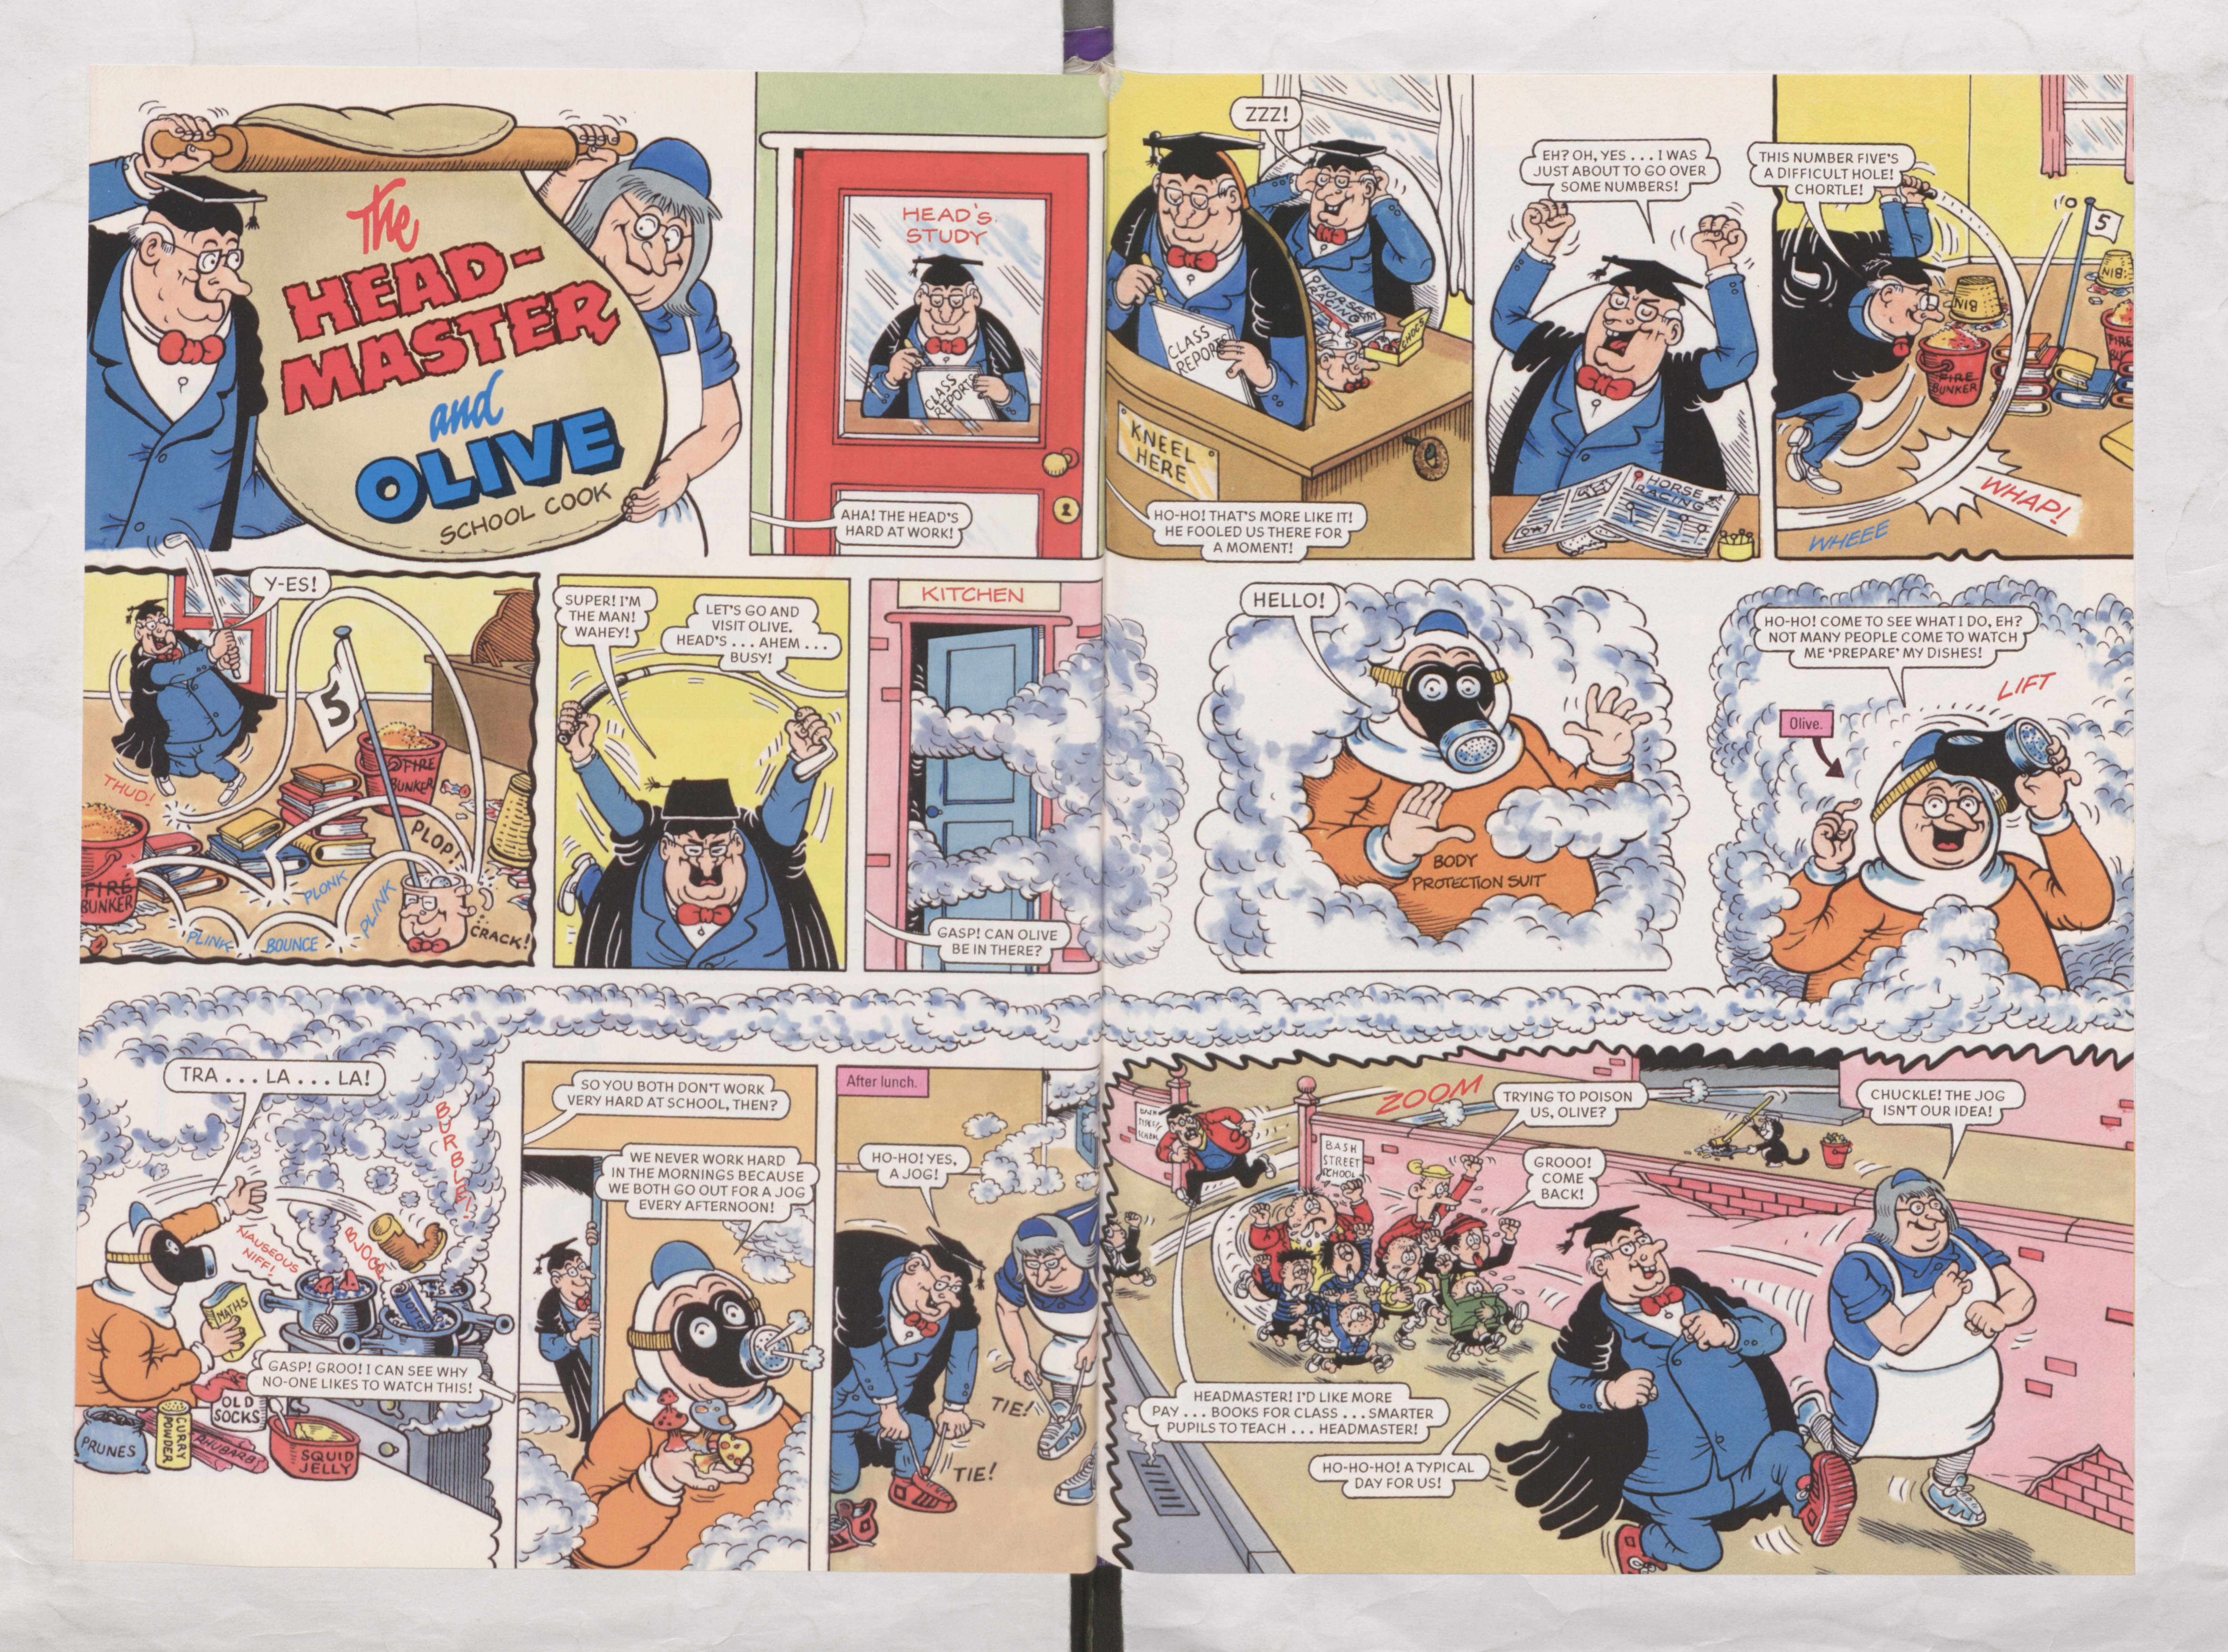 The Headmaster and Olive - Beano Annual 2002